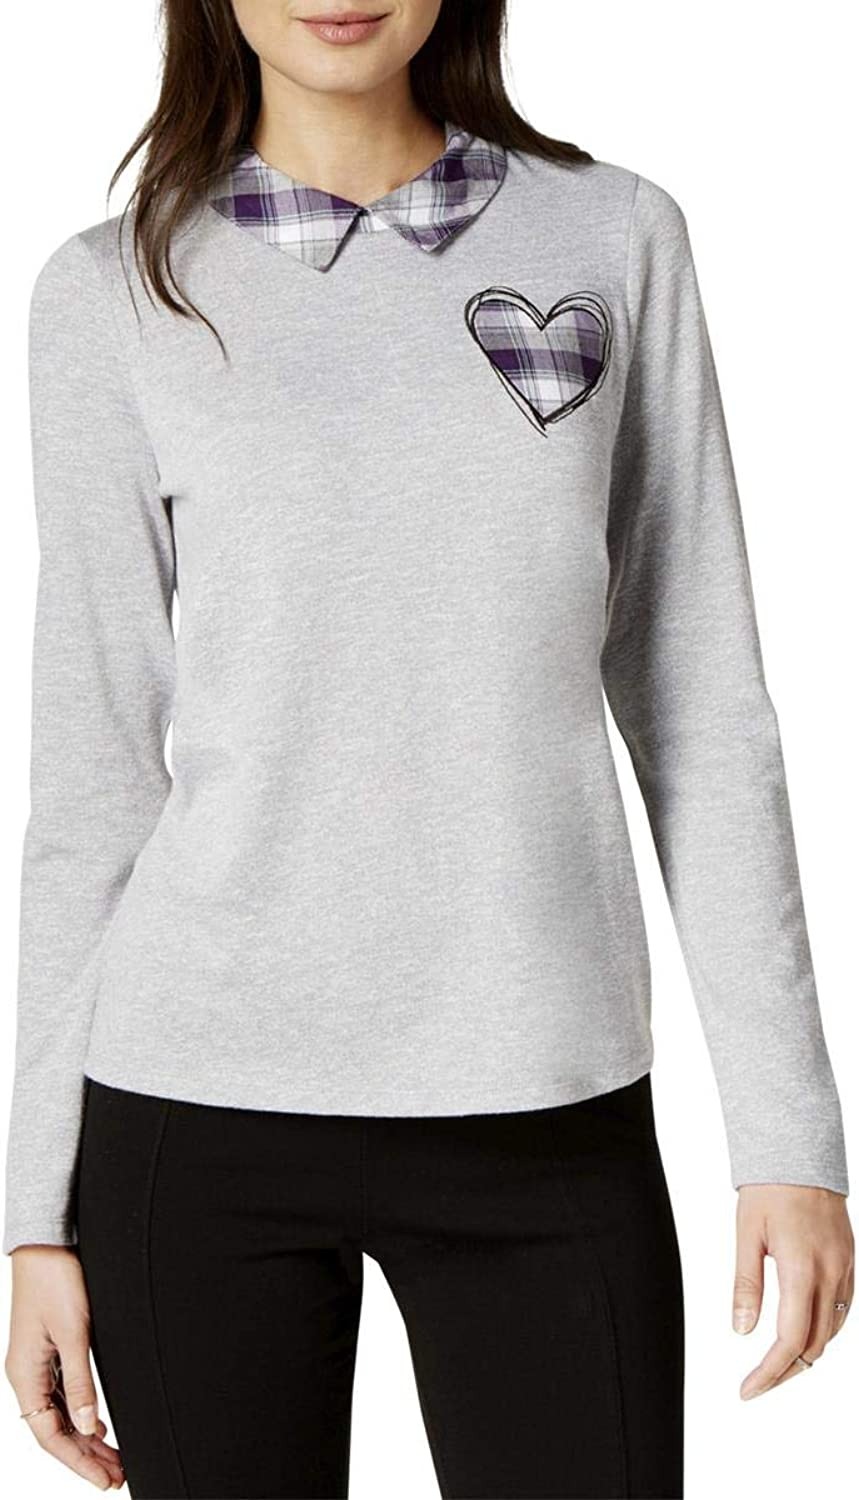 Maison Jules Womens Laid Heart Collared Knit Blouse